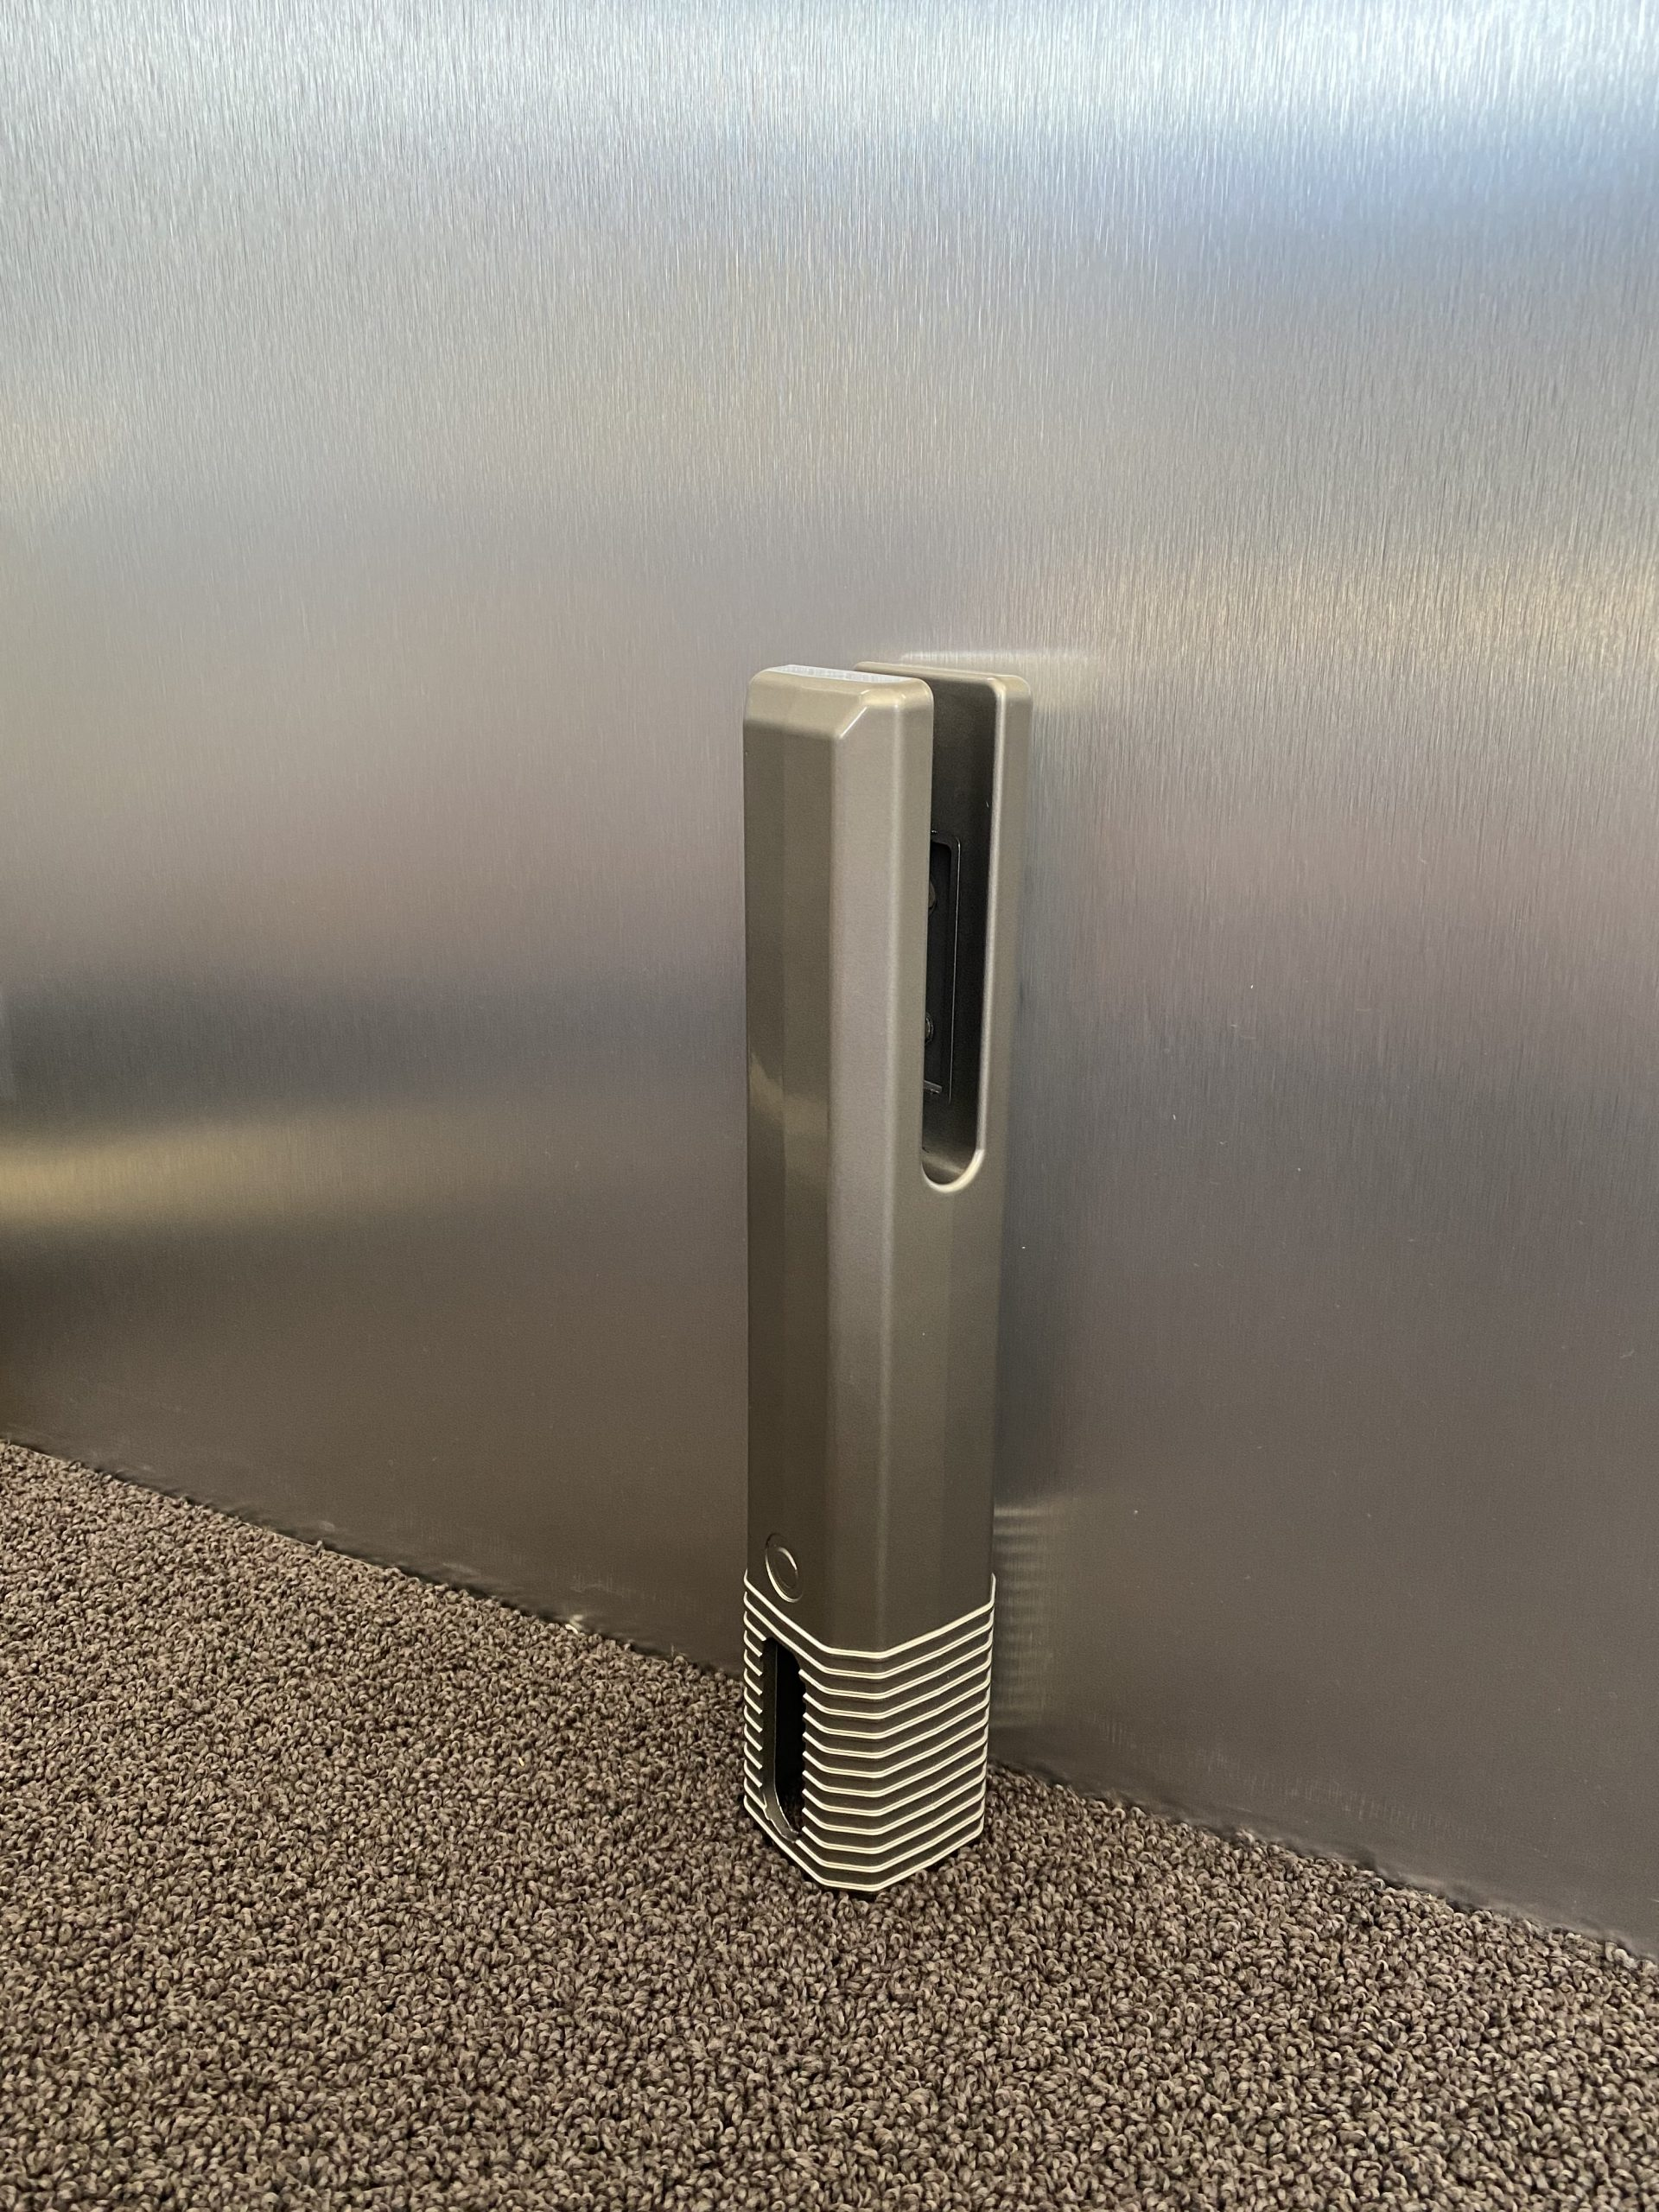 Polystainless Pool Fencing Spigot with Cover Plate